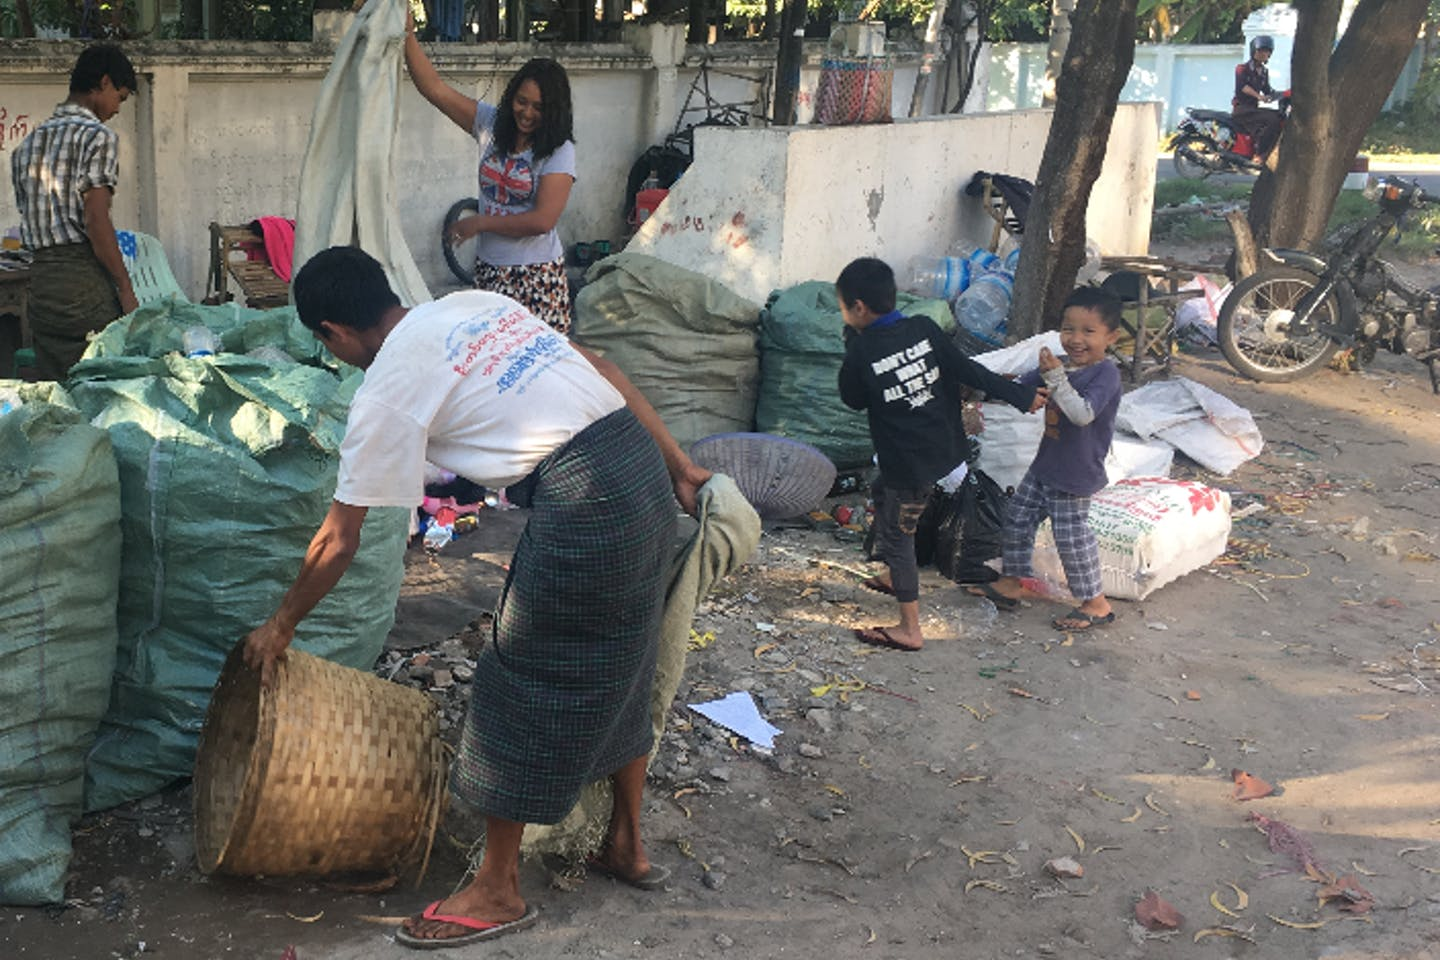 Children play with informal waste pickers in Myanmar